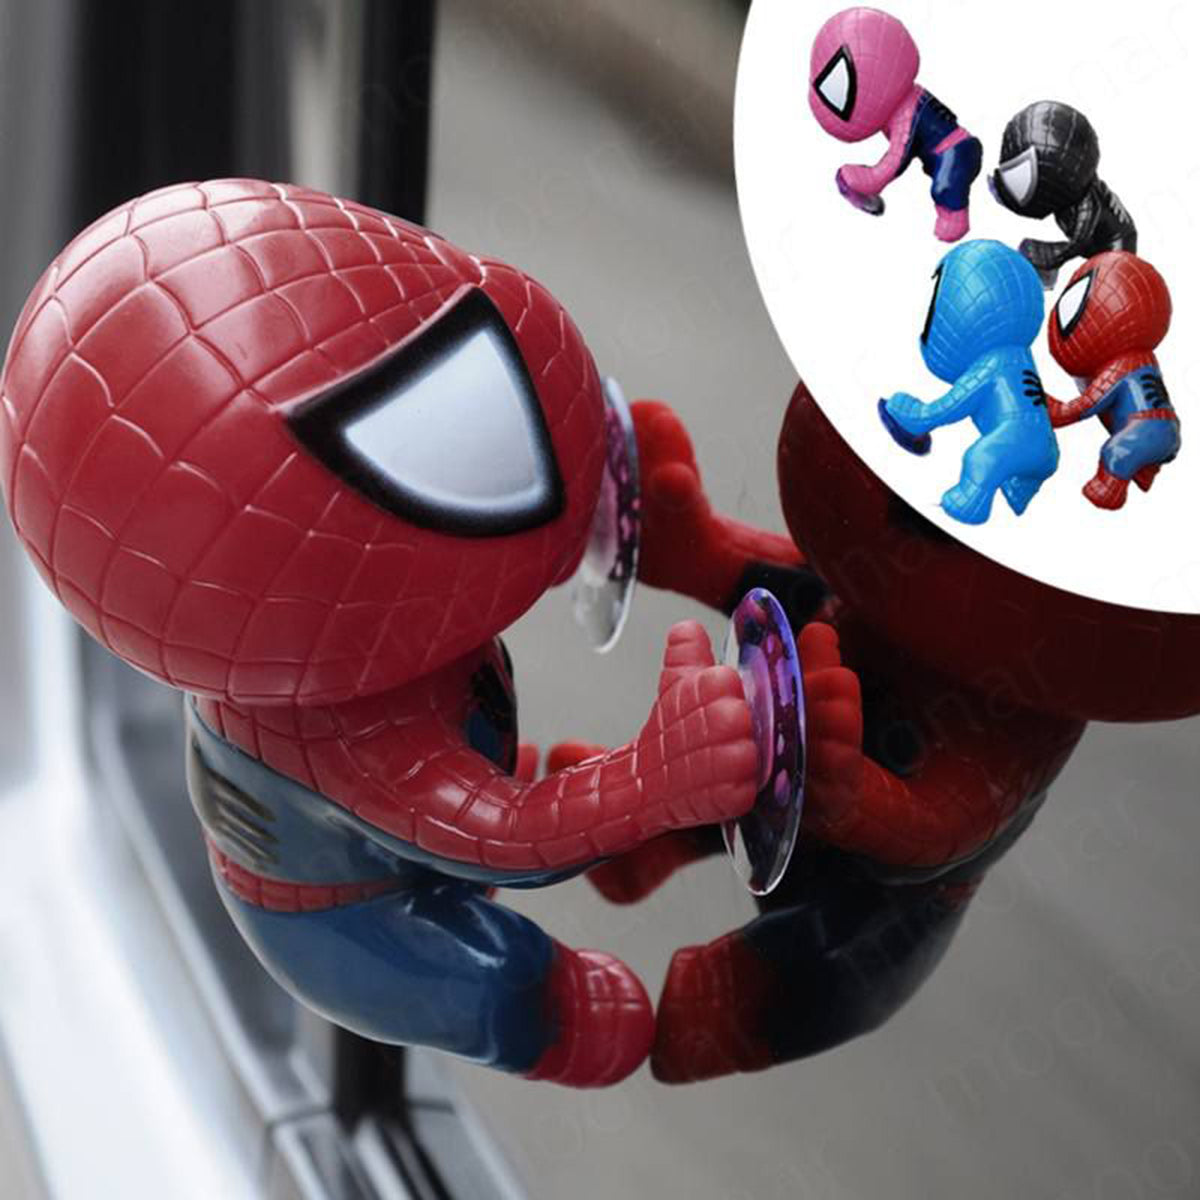 Spider Man Toy for Car & Home Interior Decoration